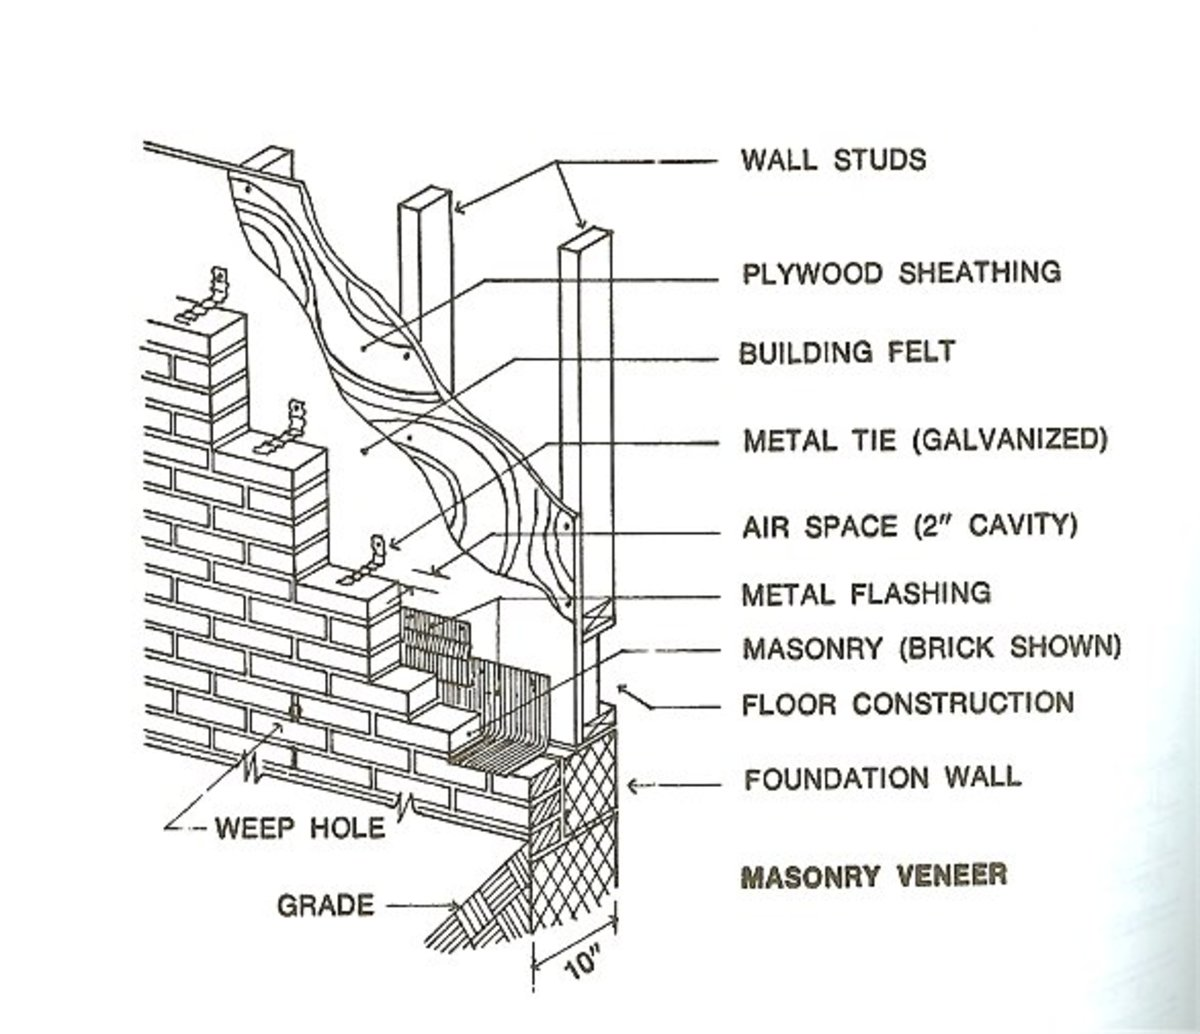 This photo is also showing how these veneer steel brackets are placed. they need to be nailed to the timber stud wall, and then build in the mortar joint as the bricklayer lays next course of bricks.